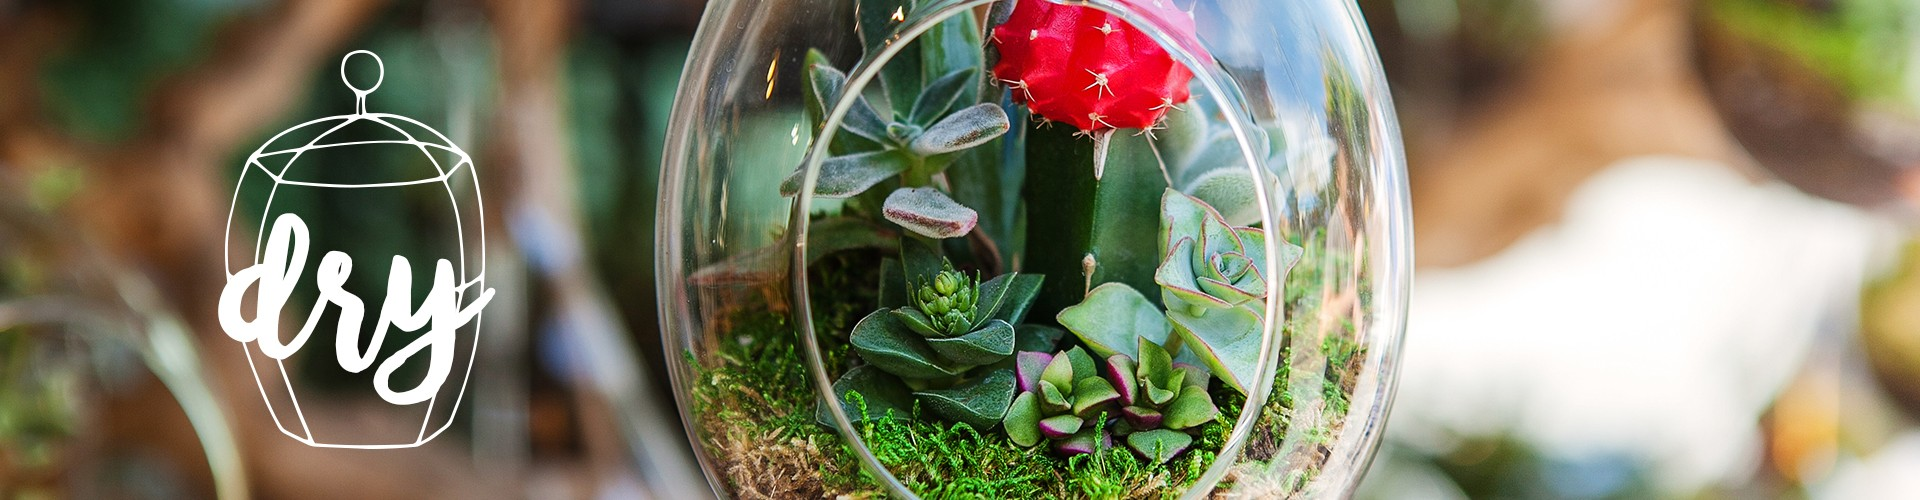 Outdoors Craft: Build Your Own Terrariums  Gillettes